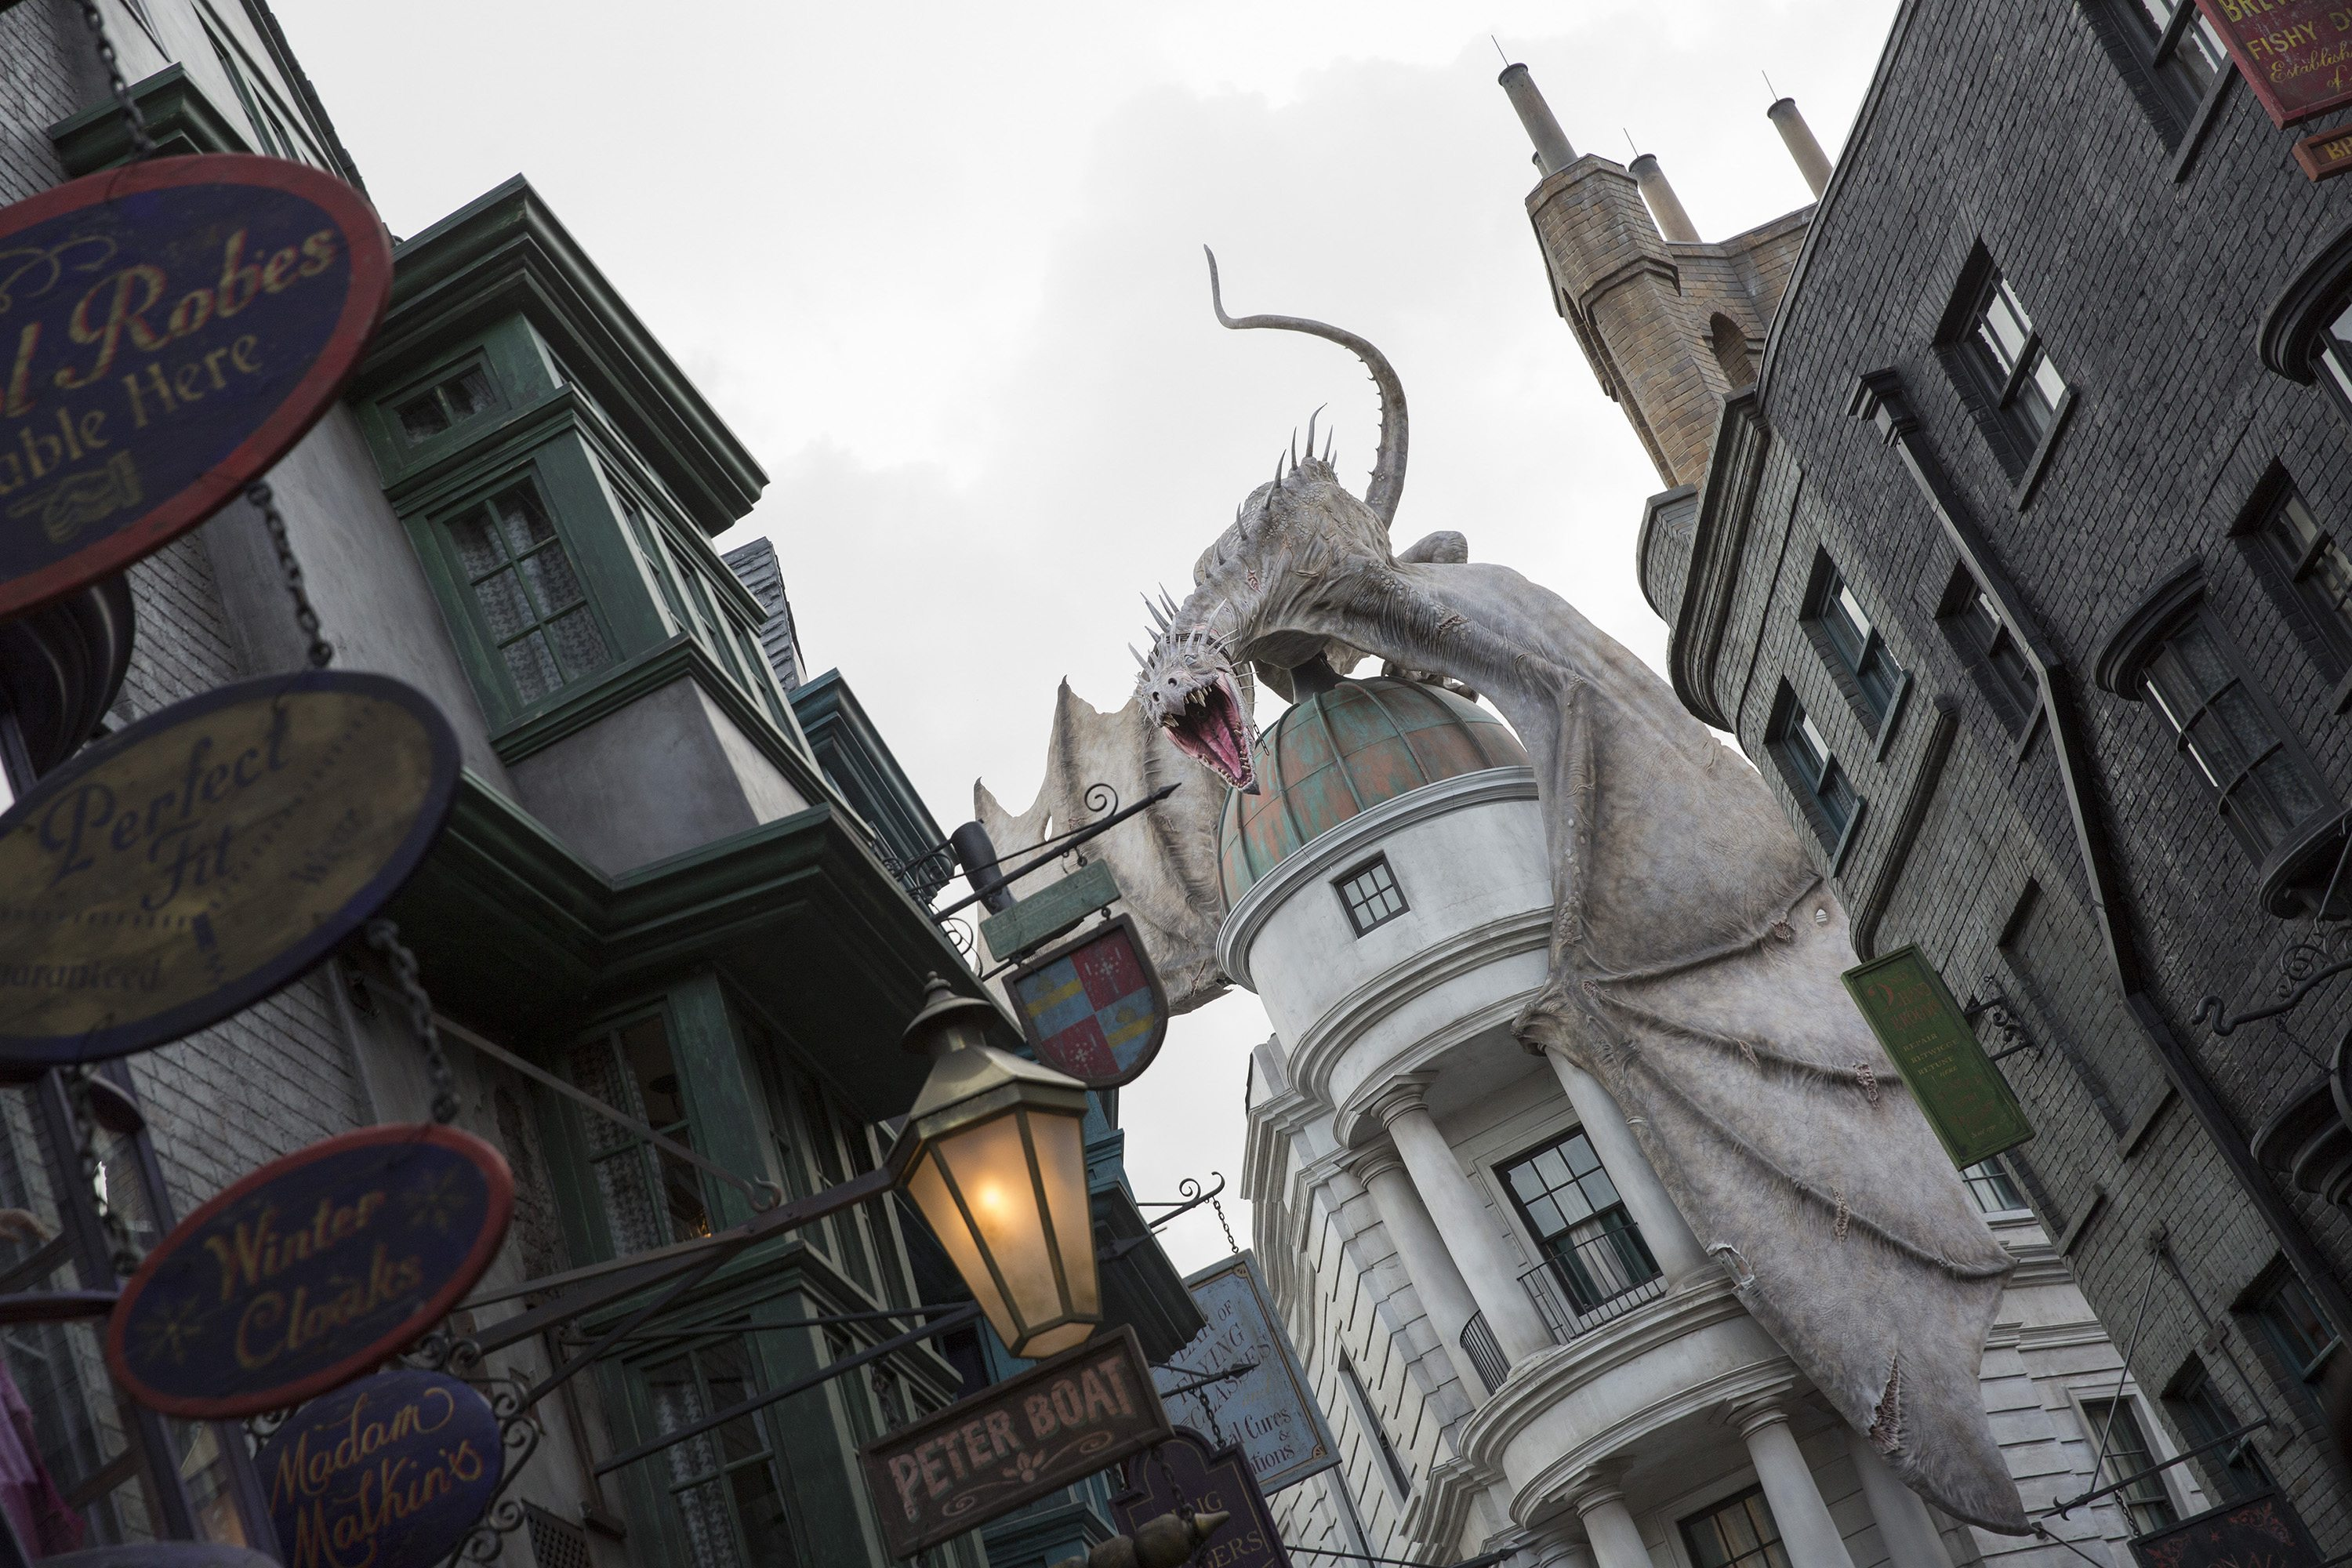 Diagon Alley  Image courtesy of Universal Orlando